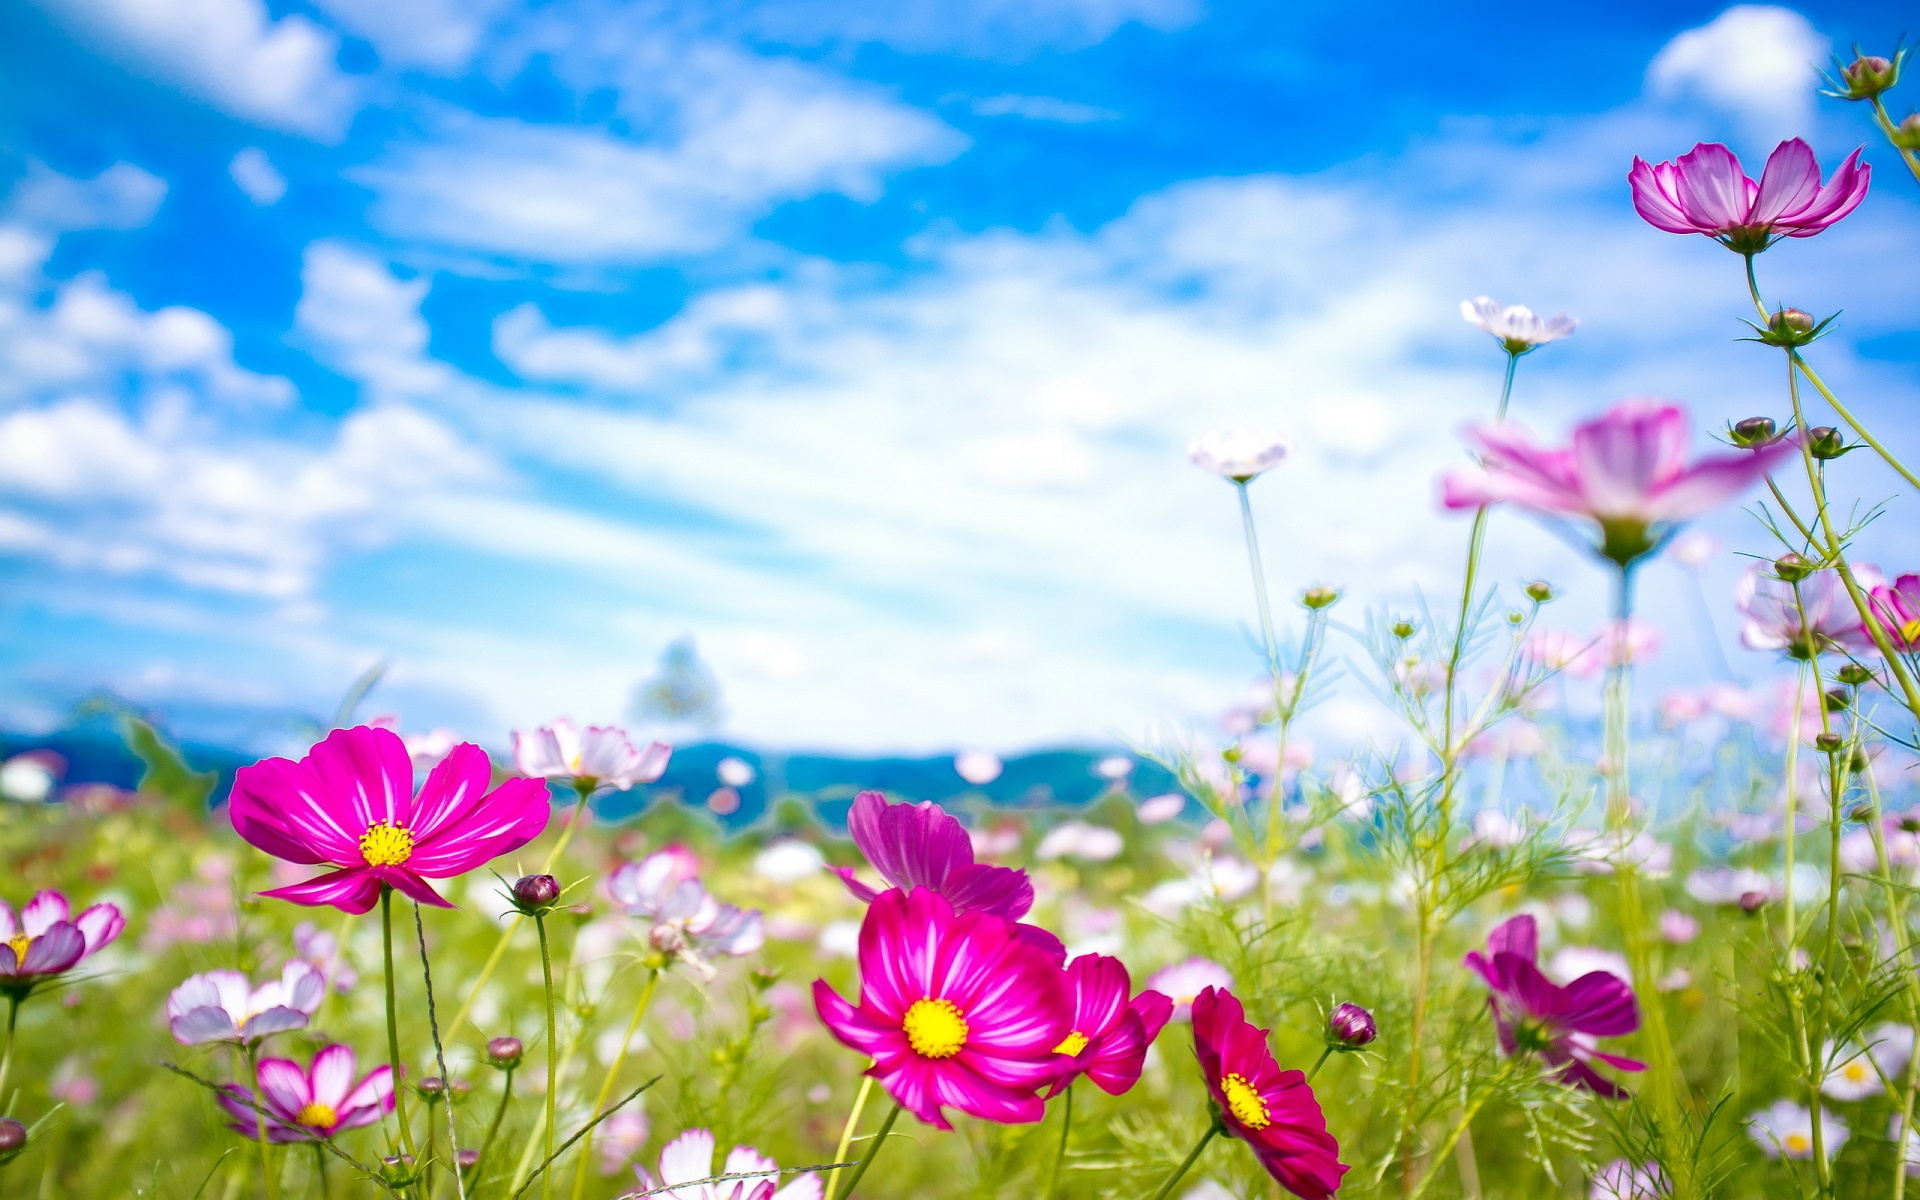 Pink Flowers Summer HD Wallpaper Widescreen ImageBankbiz